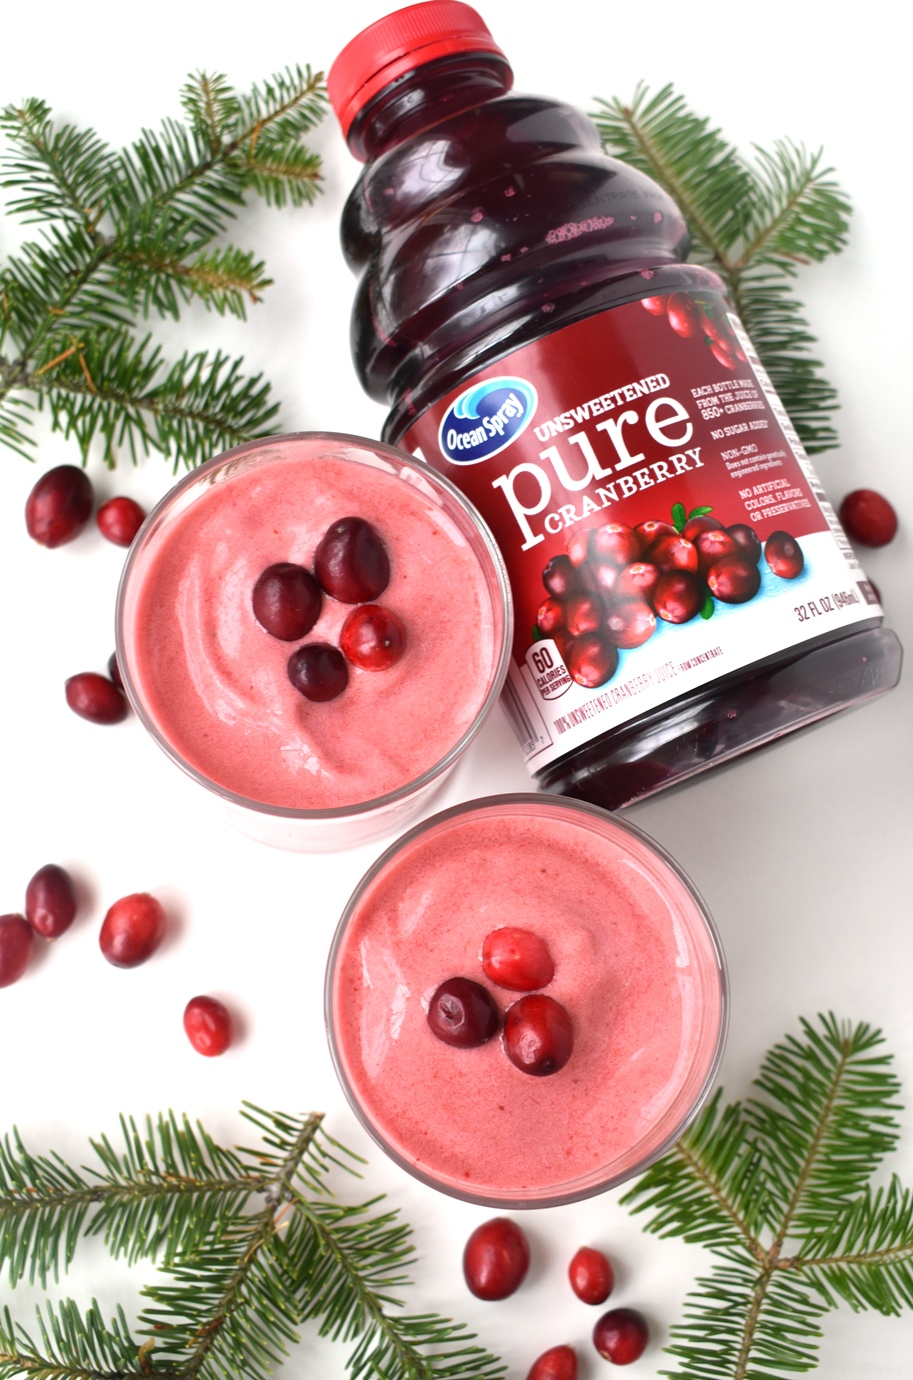 Ocean Spray cranberry smoothie